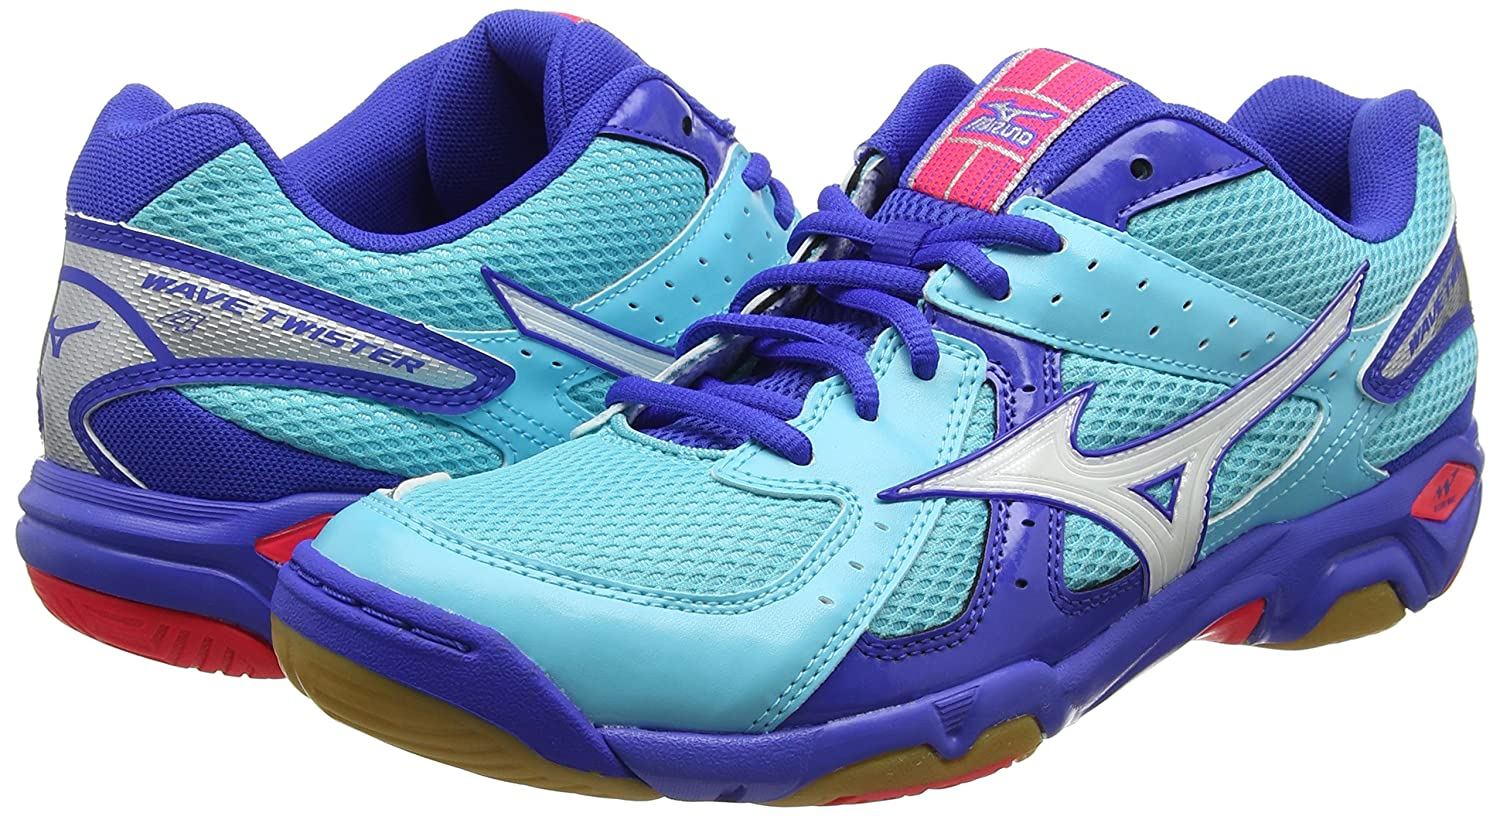 What is your review of Mizuno Wave Twister 4 Badminton shoes